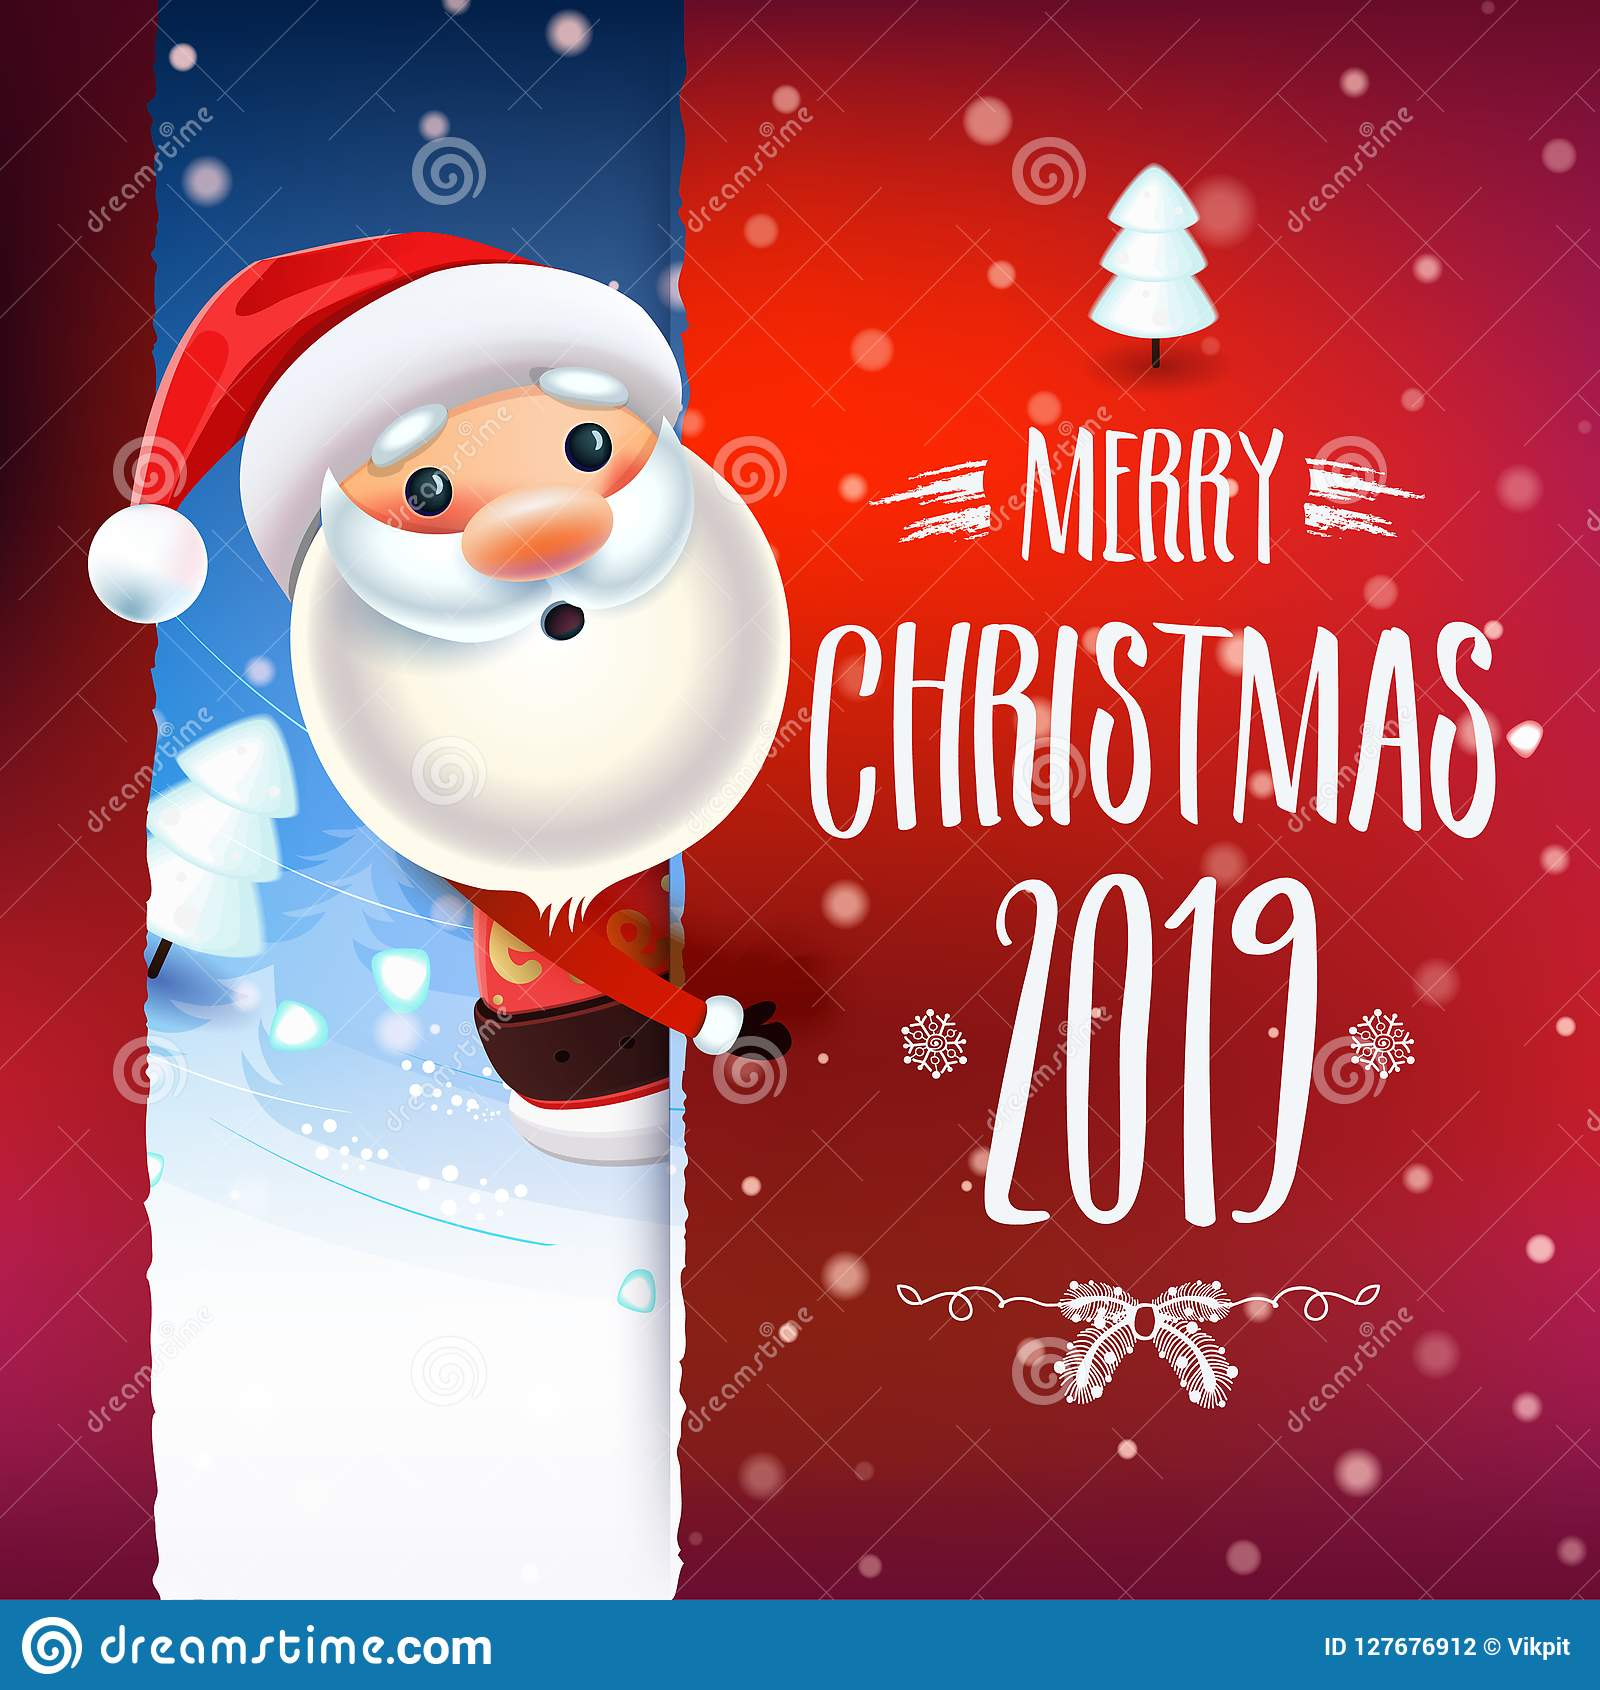 Merry Christmas Images 2019.2019 New Year Merry Christmas Symbol Stock Vector